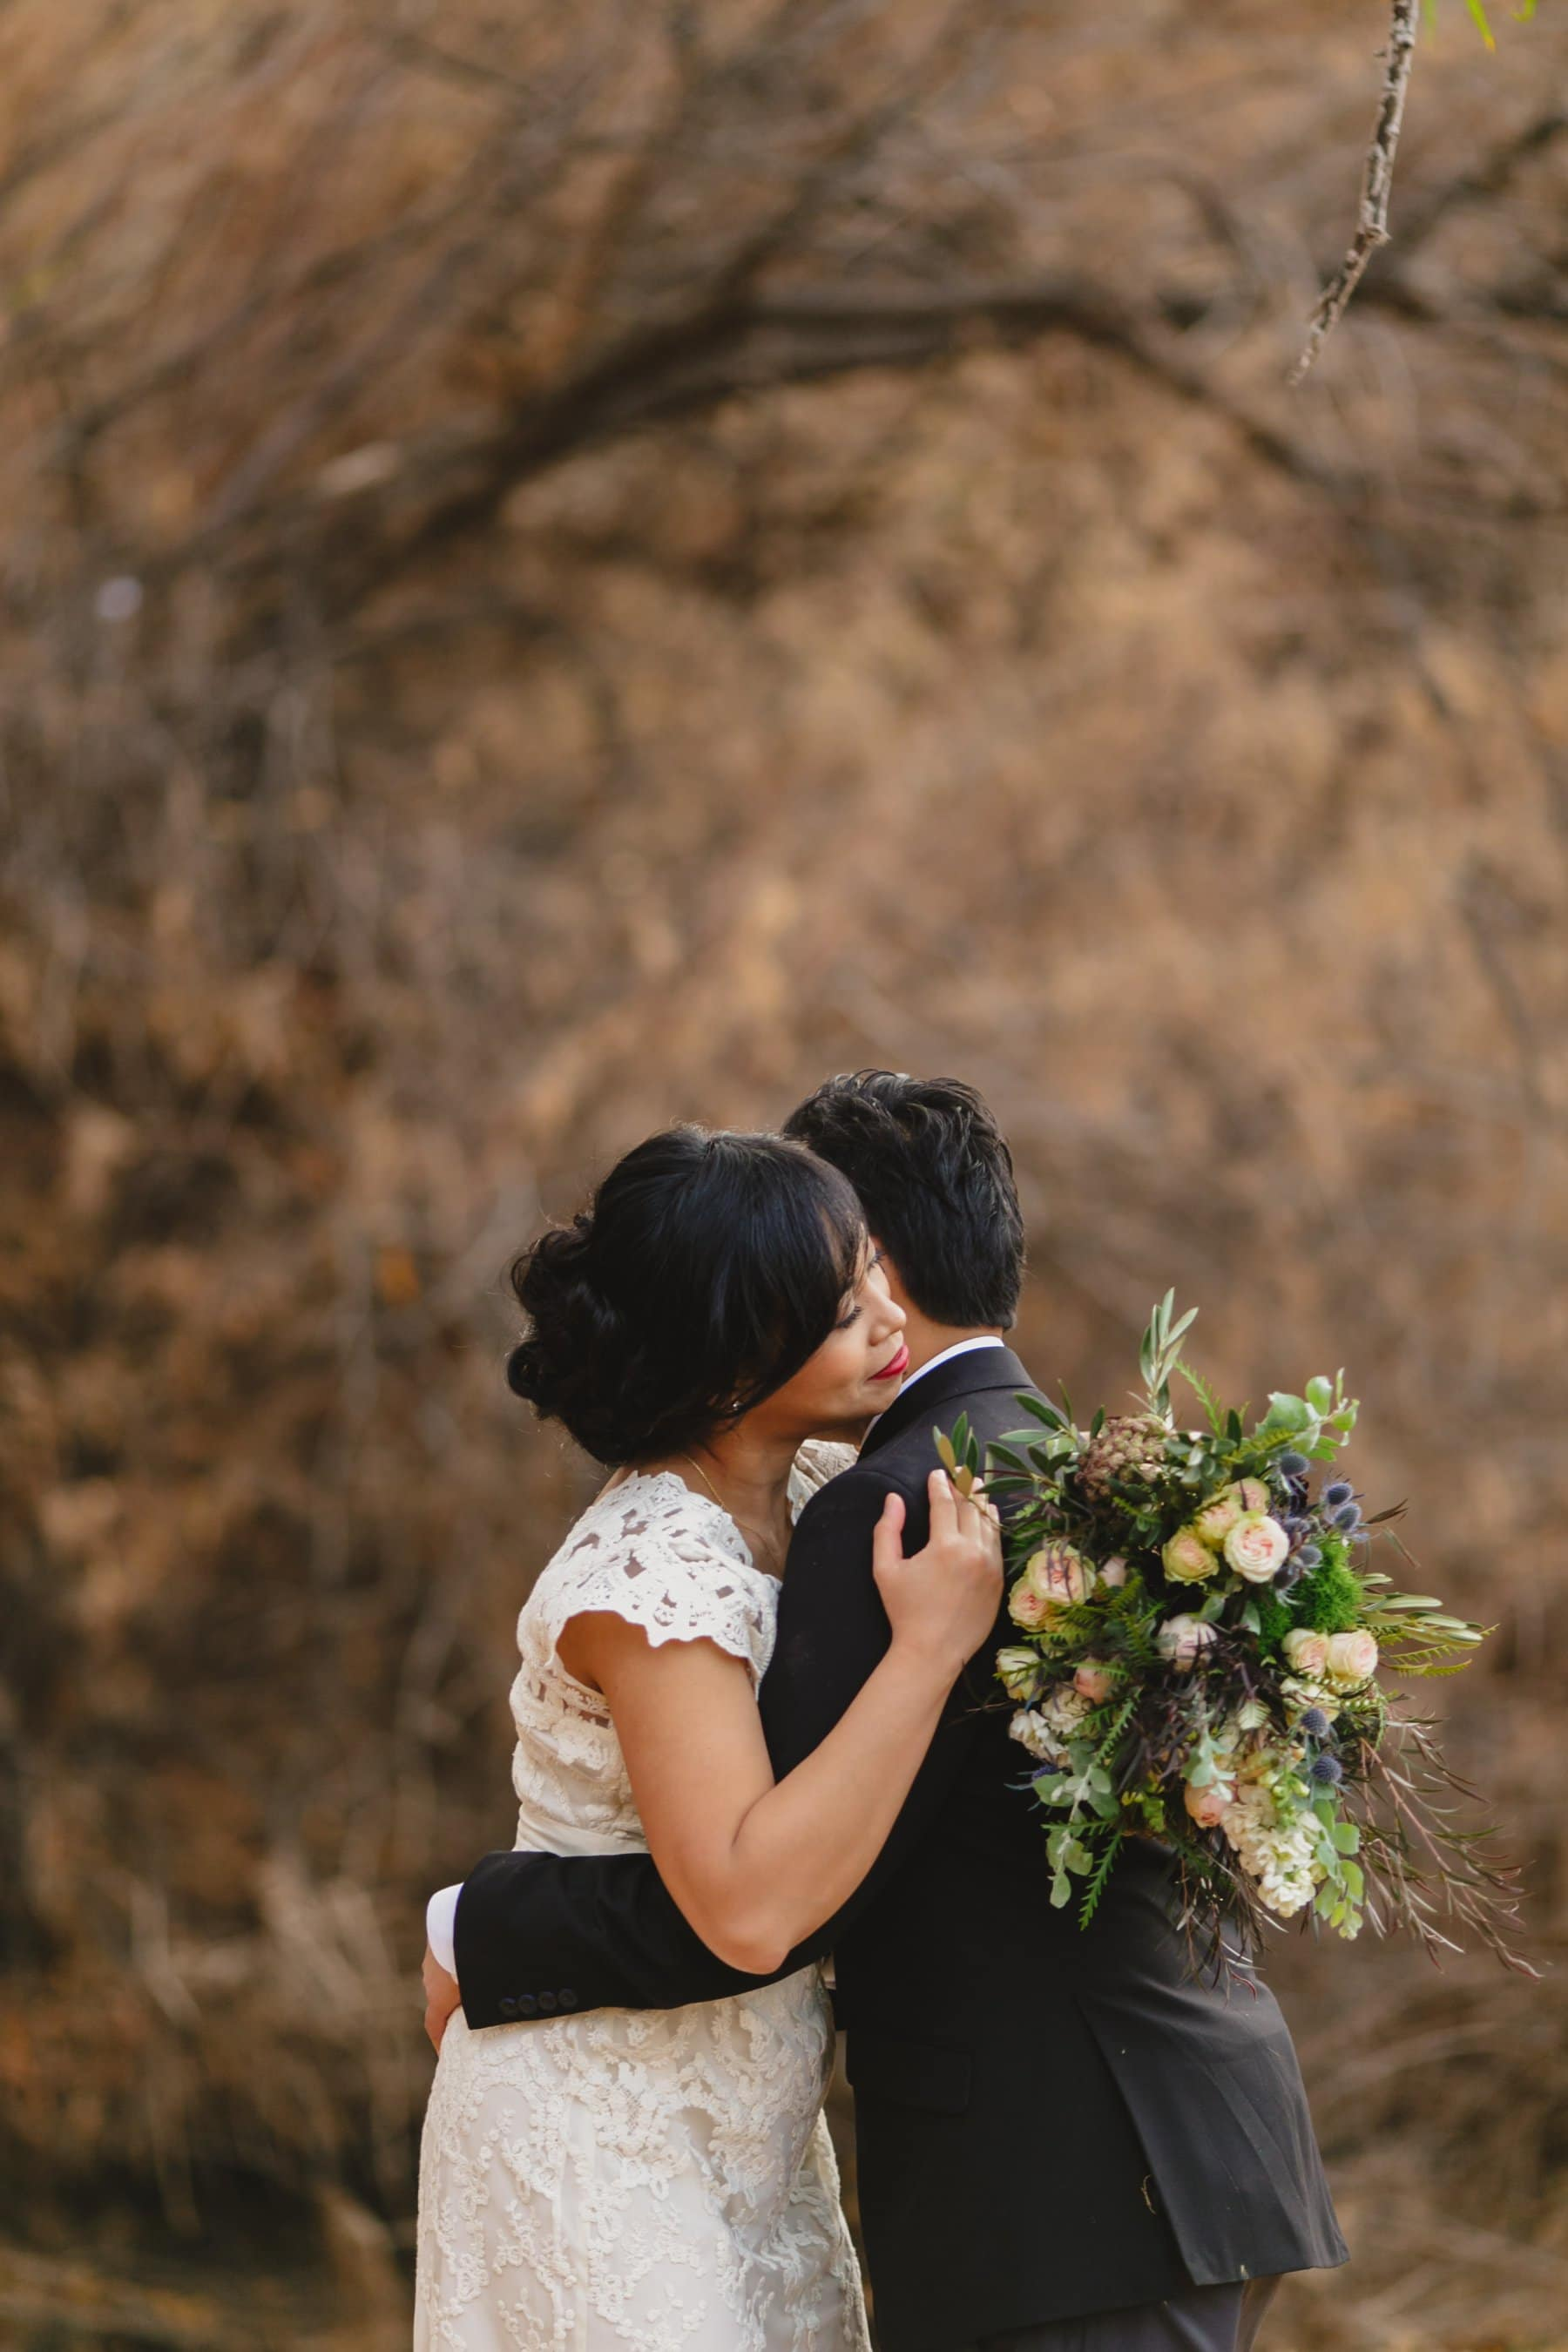 emotional candid wedding photos outdoor wedding in Arizona